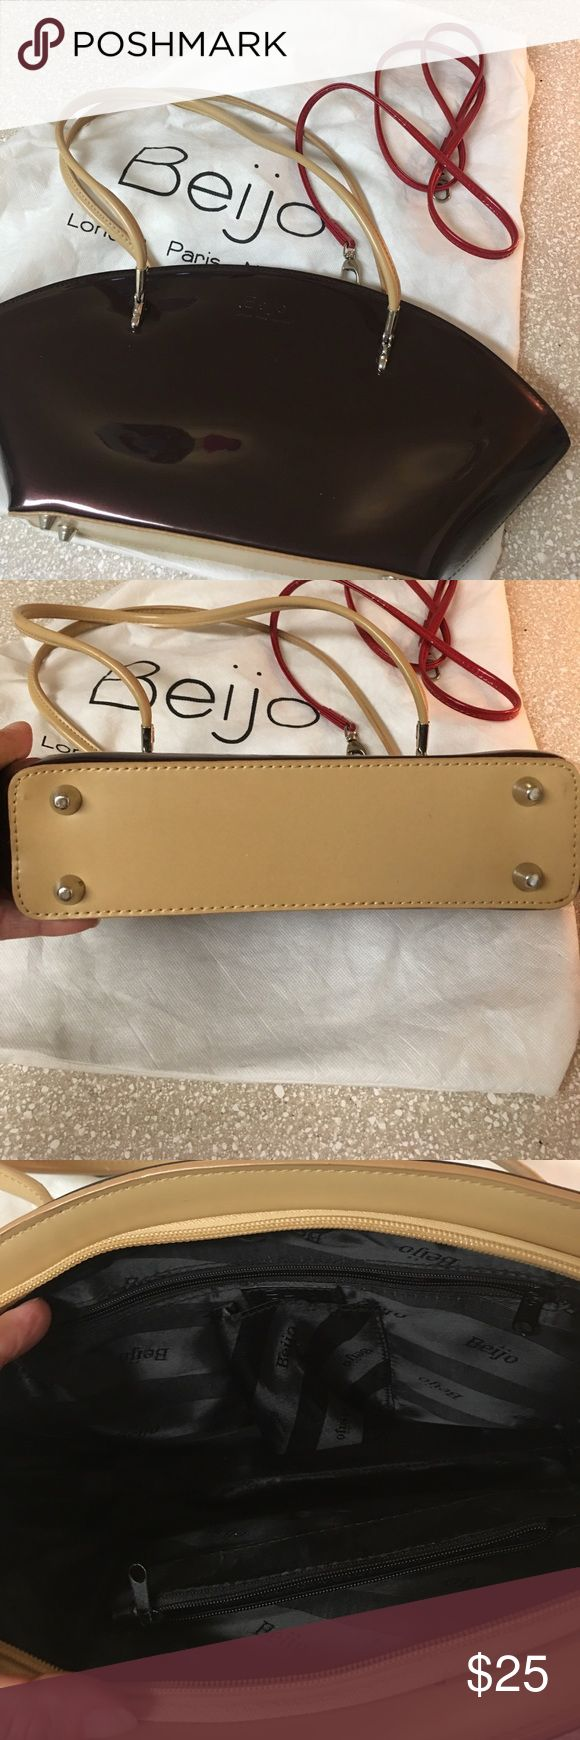 Beijo bag Like new.  Has extra red strap to attach for a shoulder bag Bags